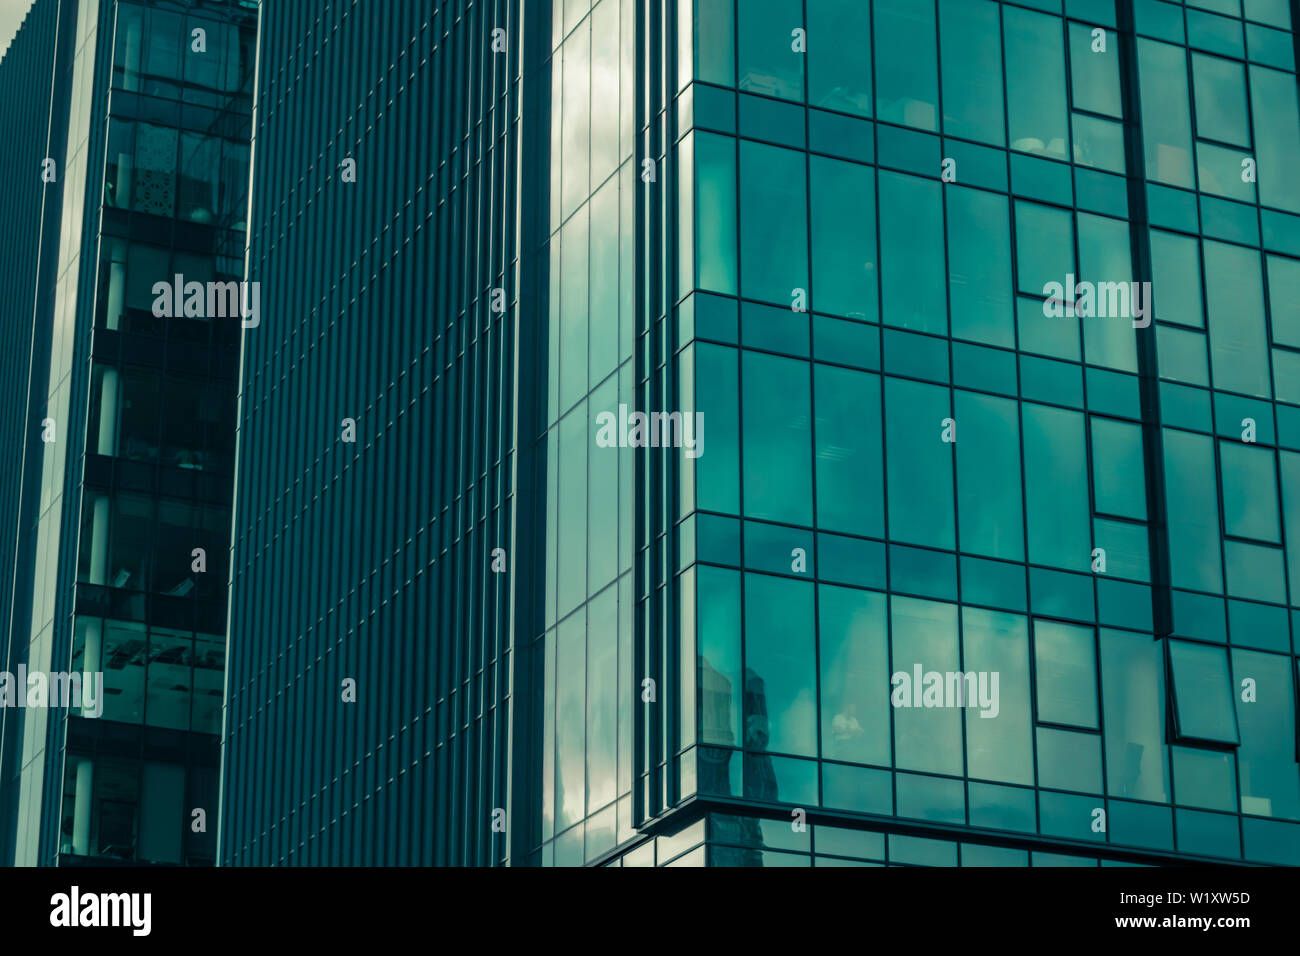 Sky with clouds reflected in windows of modern office building. Business background. Stock Photo